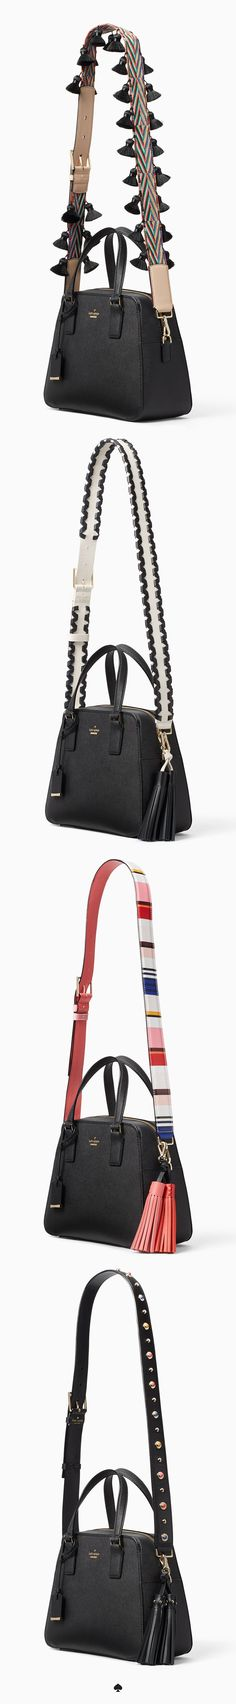 it's like a jewelry change for your bag. shop straps and tassels from kate spade new york